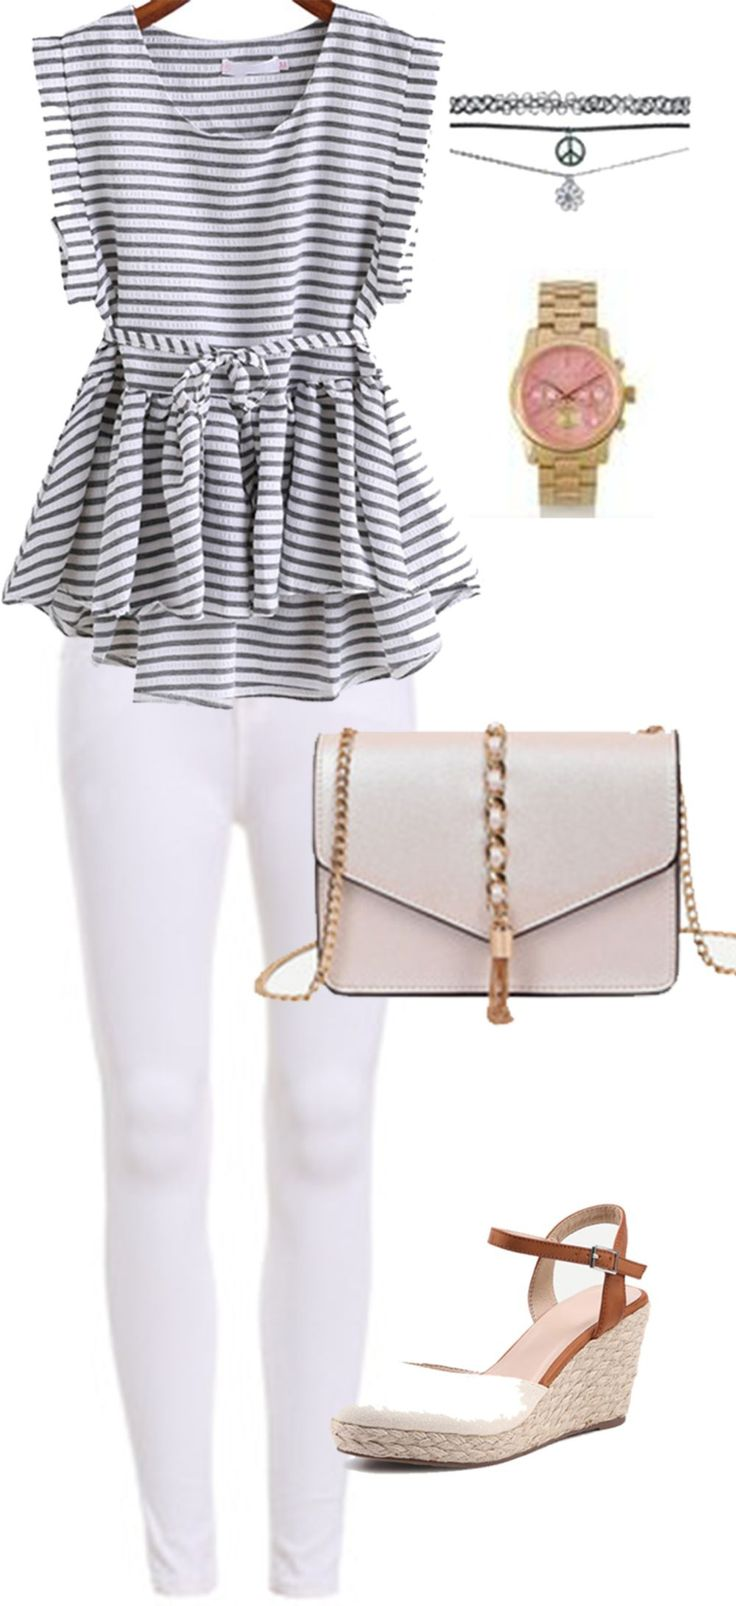 Breathtaking 65 Amazing Casual Stripe Outfits Ideas for Women from https://www.fashionetter.com/2017/05/28/65-amazing-casual-stripe-outfits-ideas-women/